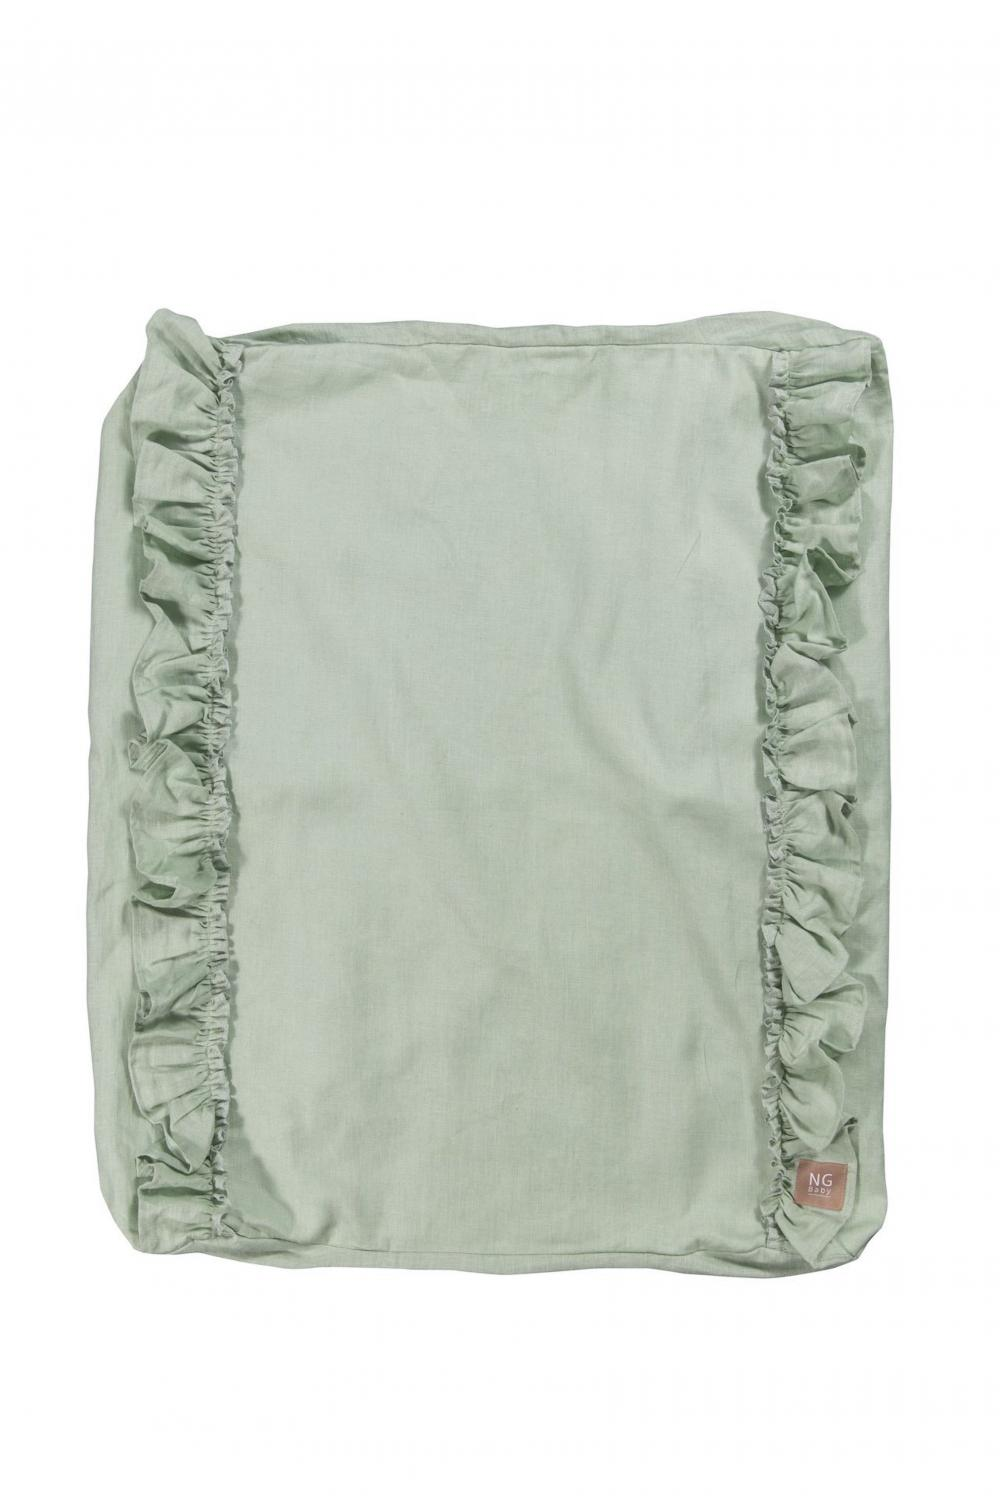 Changing pad cover   Sage Green   Mood